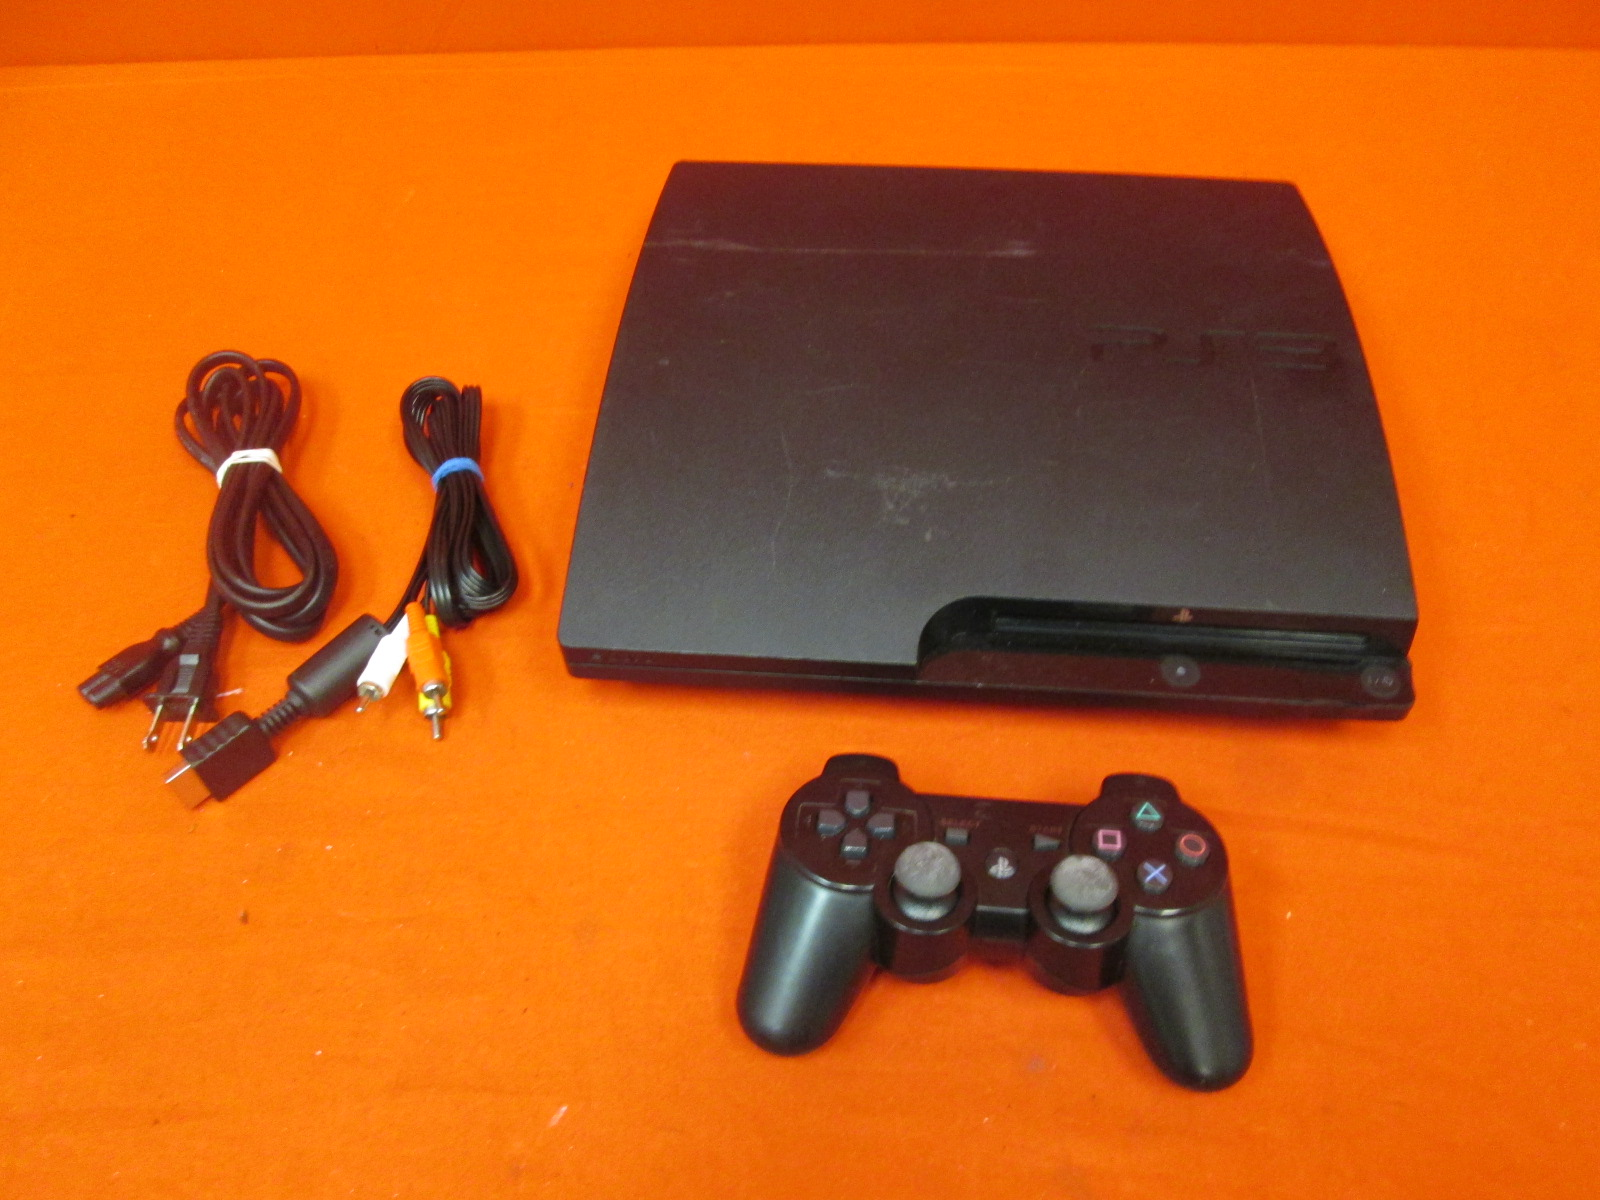 Image 0 of Sony PlayStation 3 Slim 160GB Video Game System With Controller